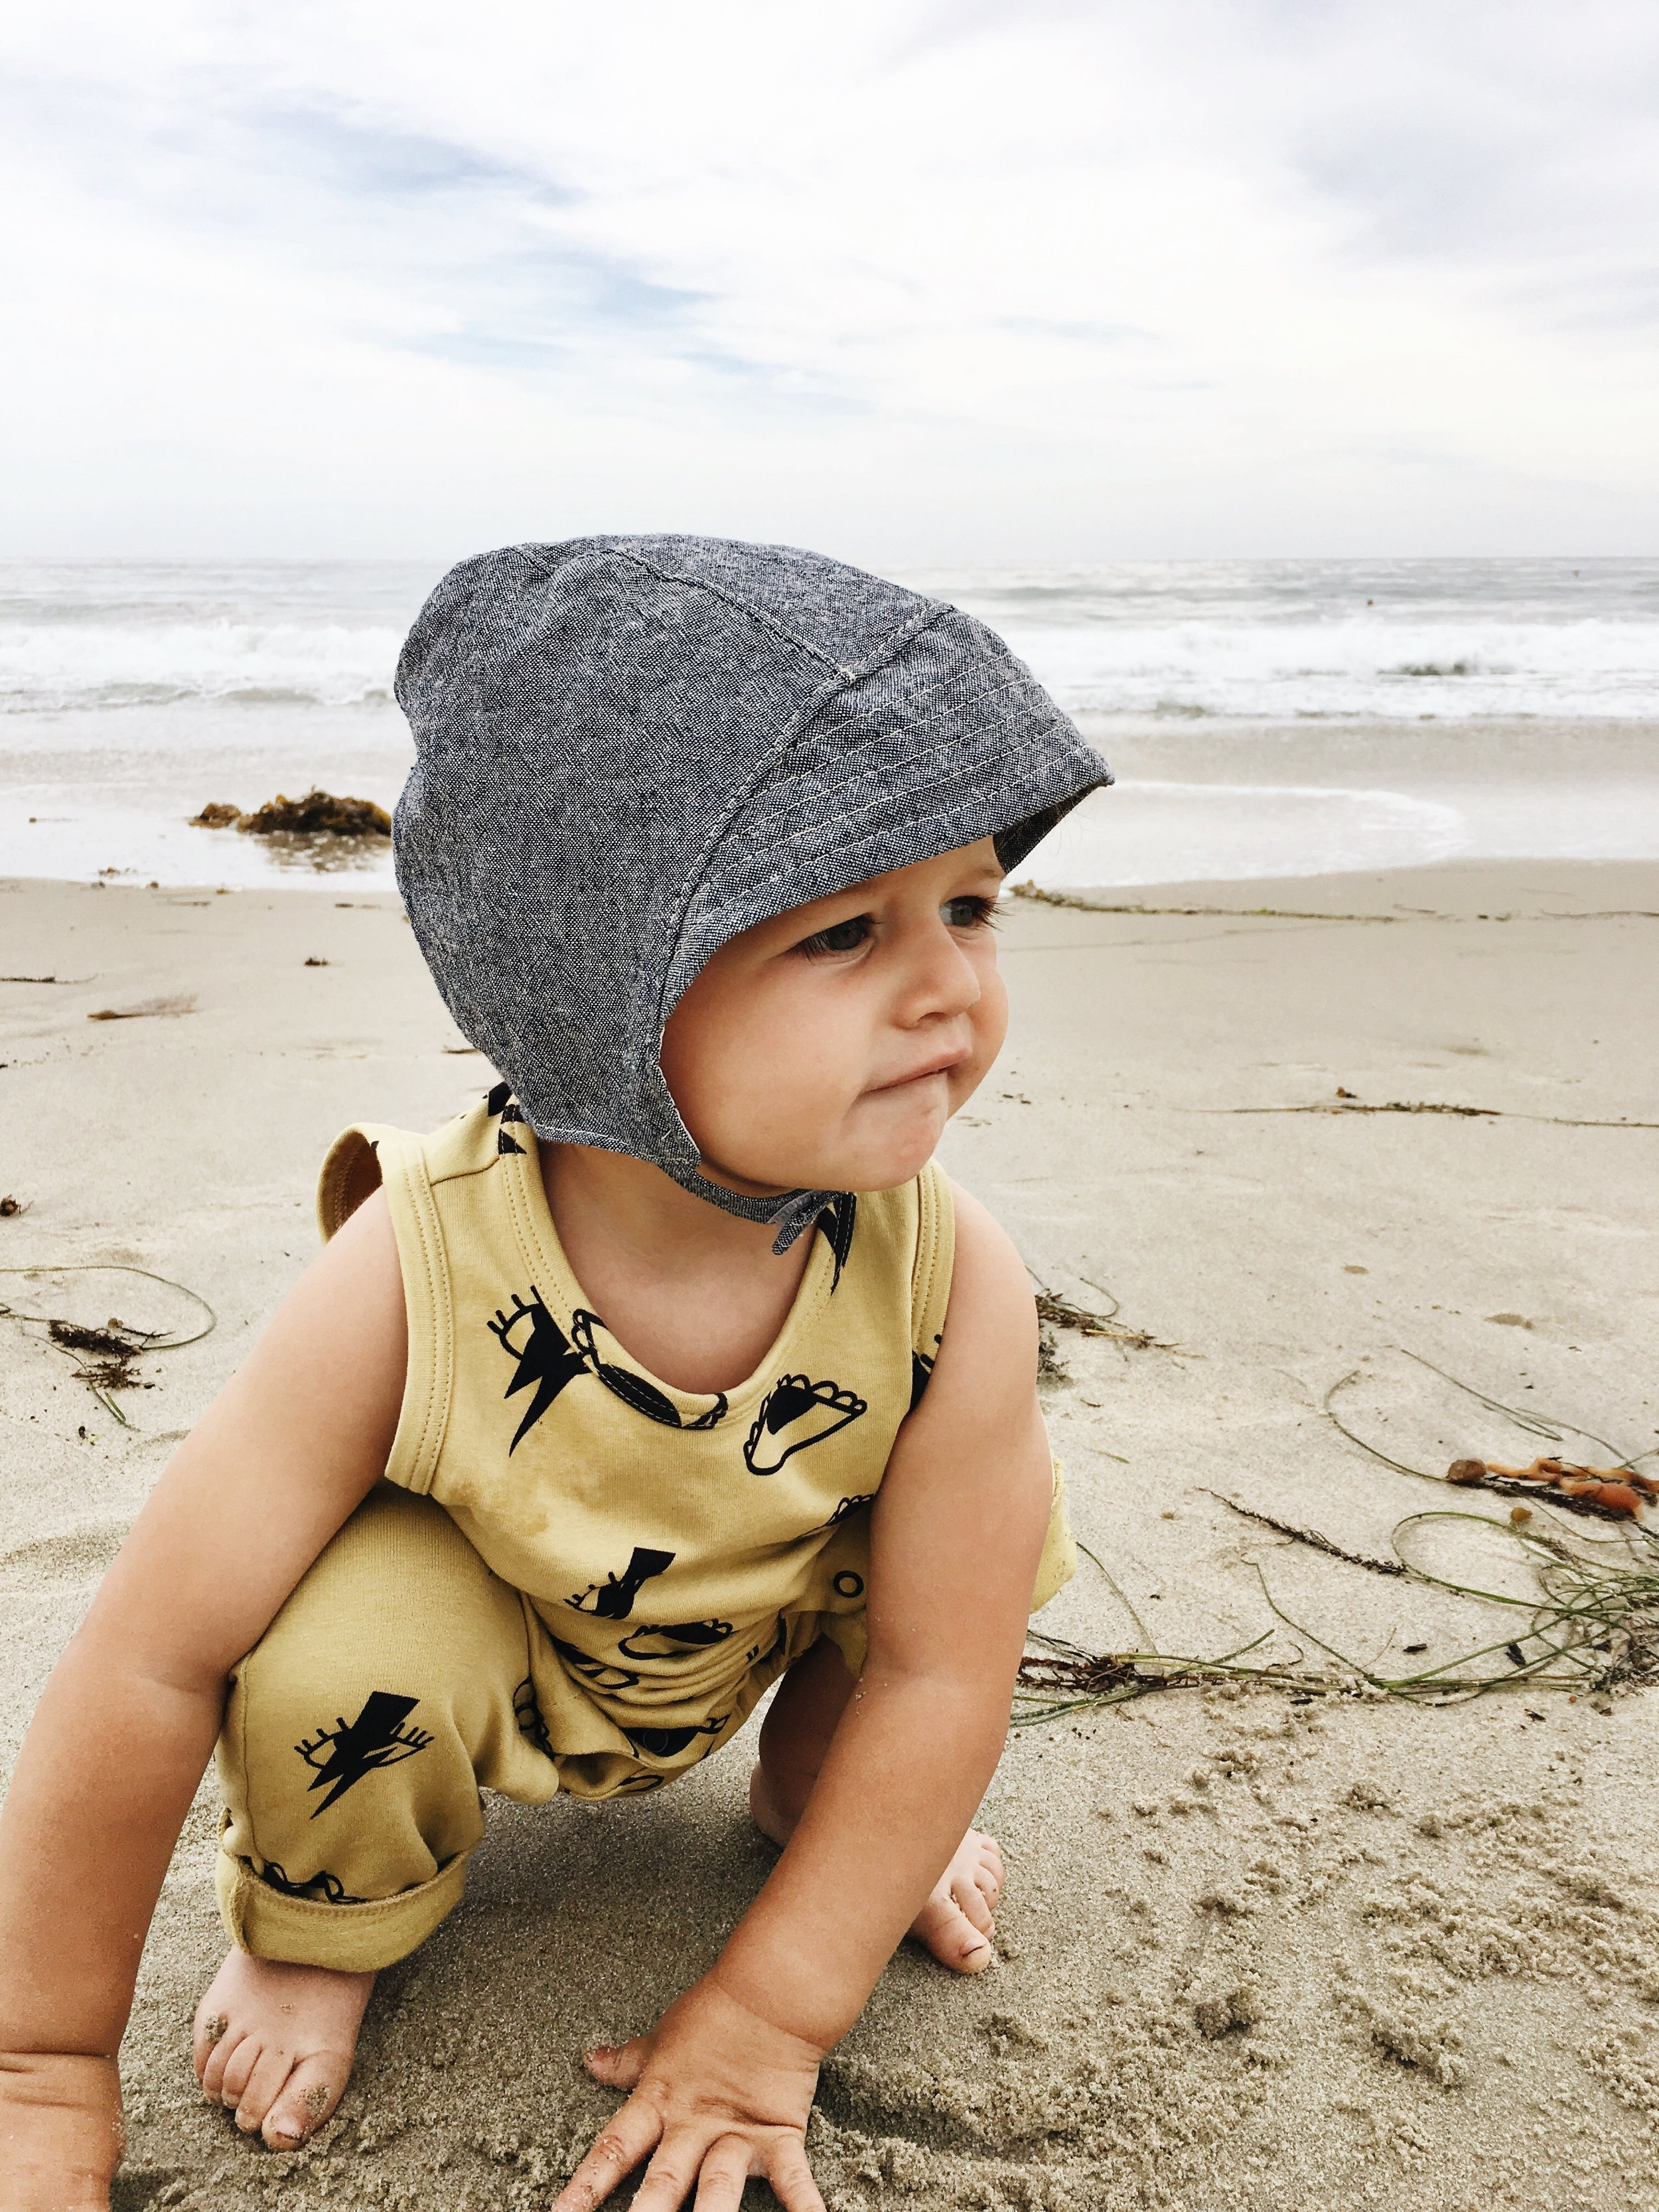 Beach Baby in denim sun bonnet  by Blue Corduroy on Etsy. Photo by  Sarah Holstrom.